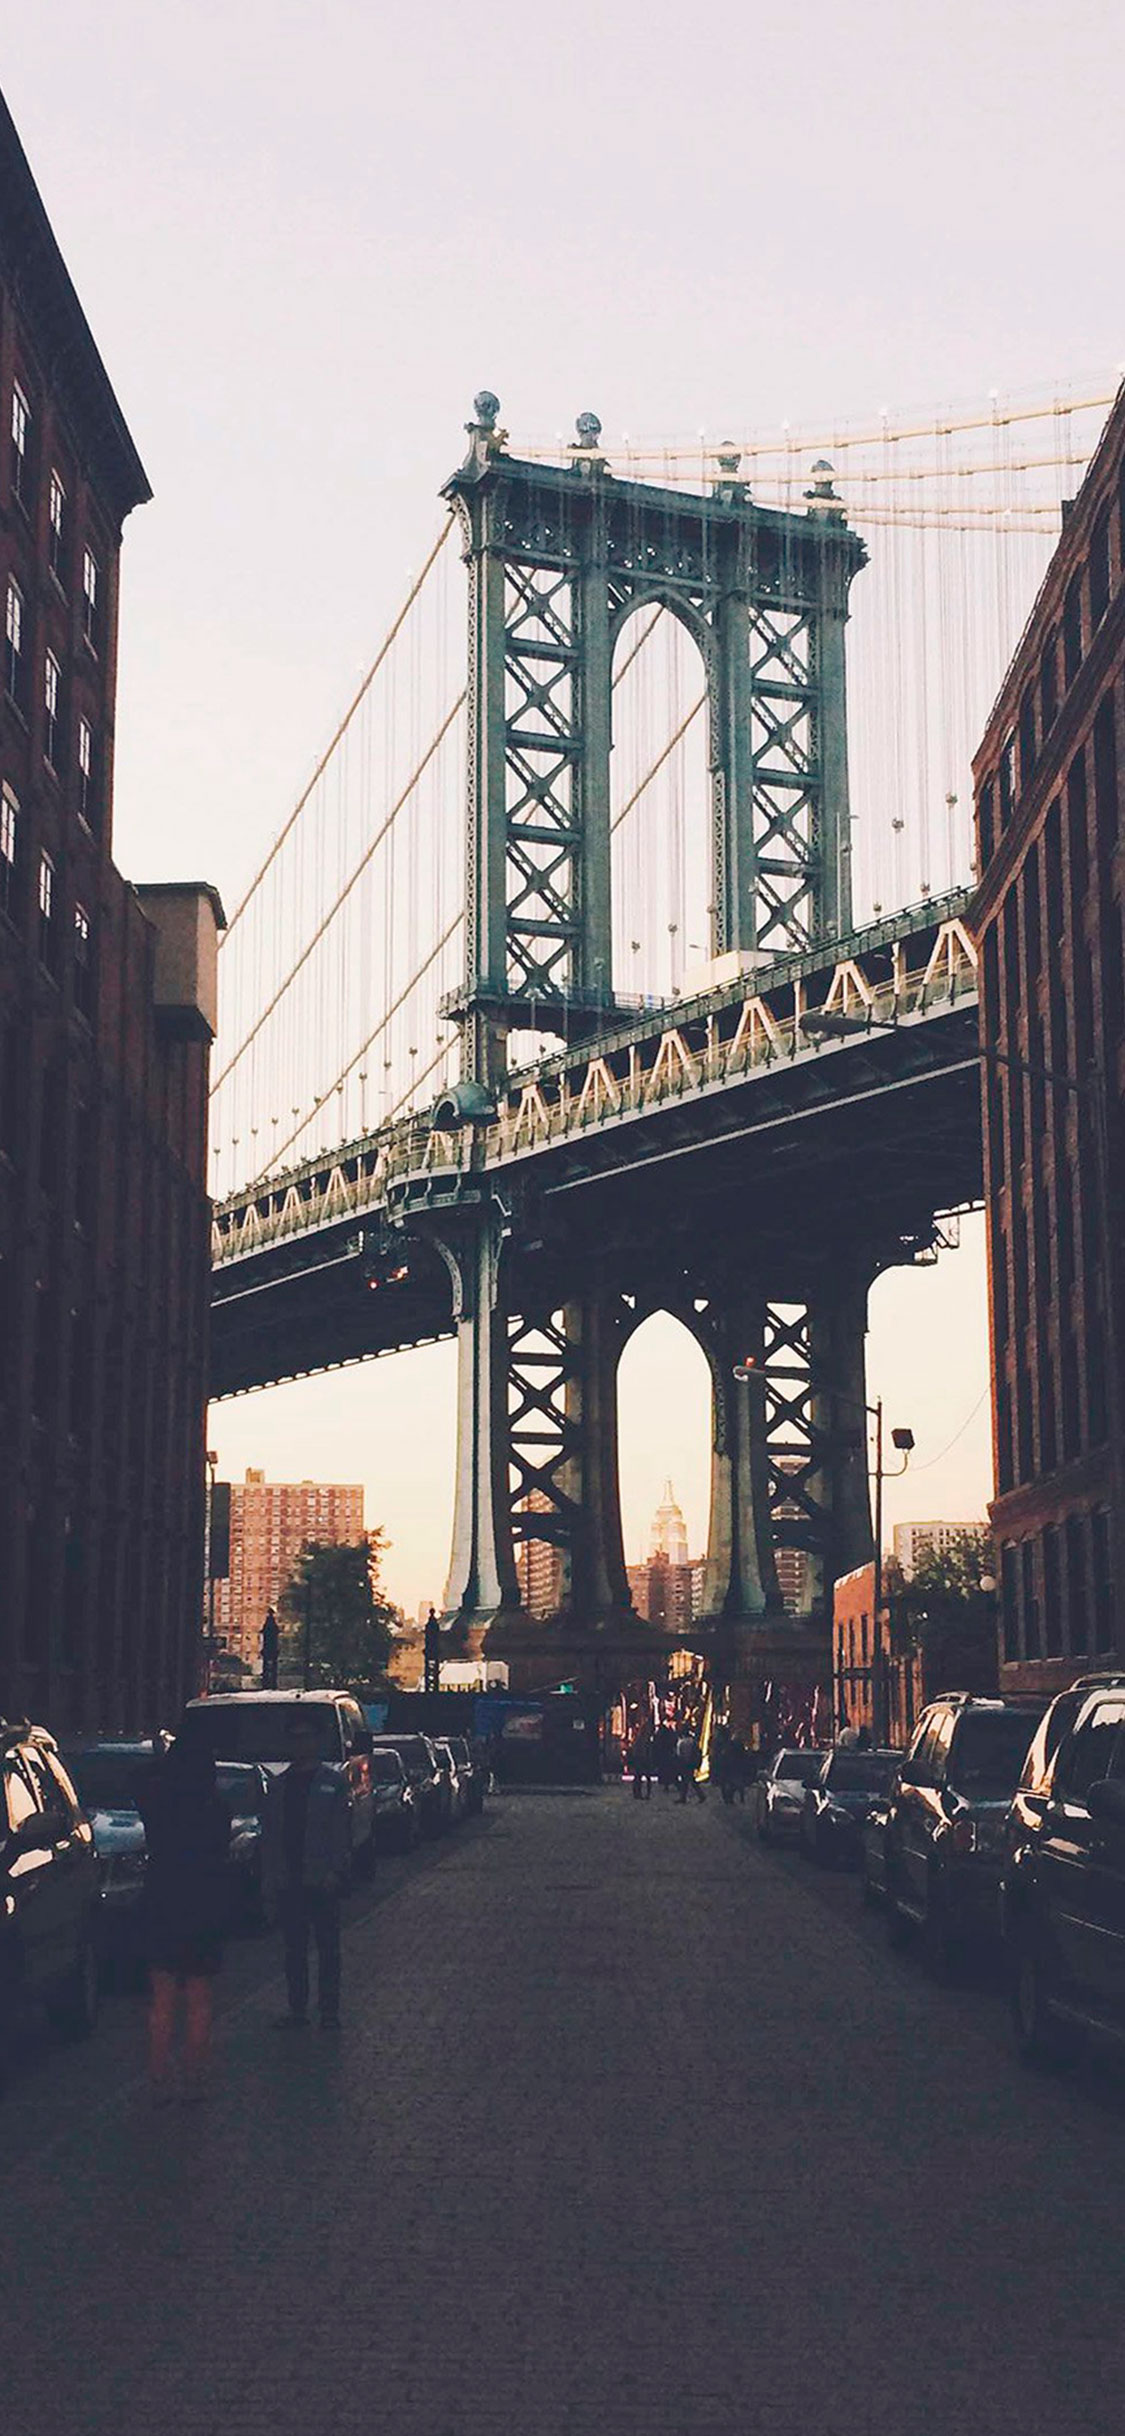 iPhone wallpaper new york bridge Fonds d'écran iPhone du 04/06/2018